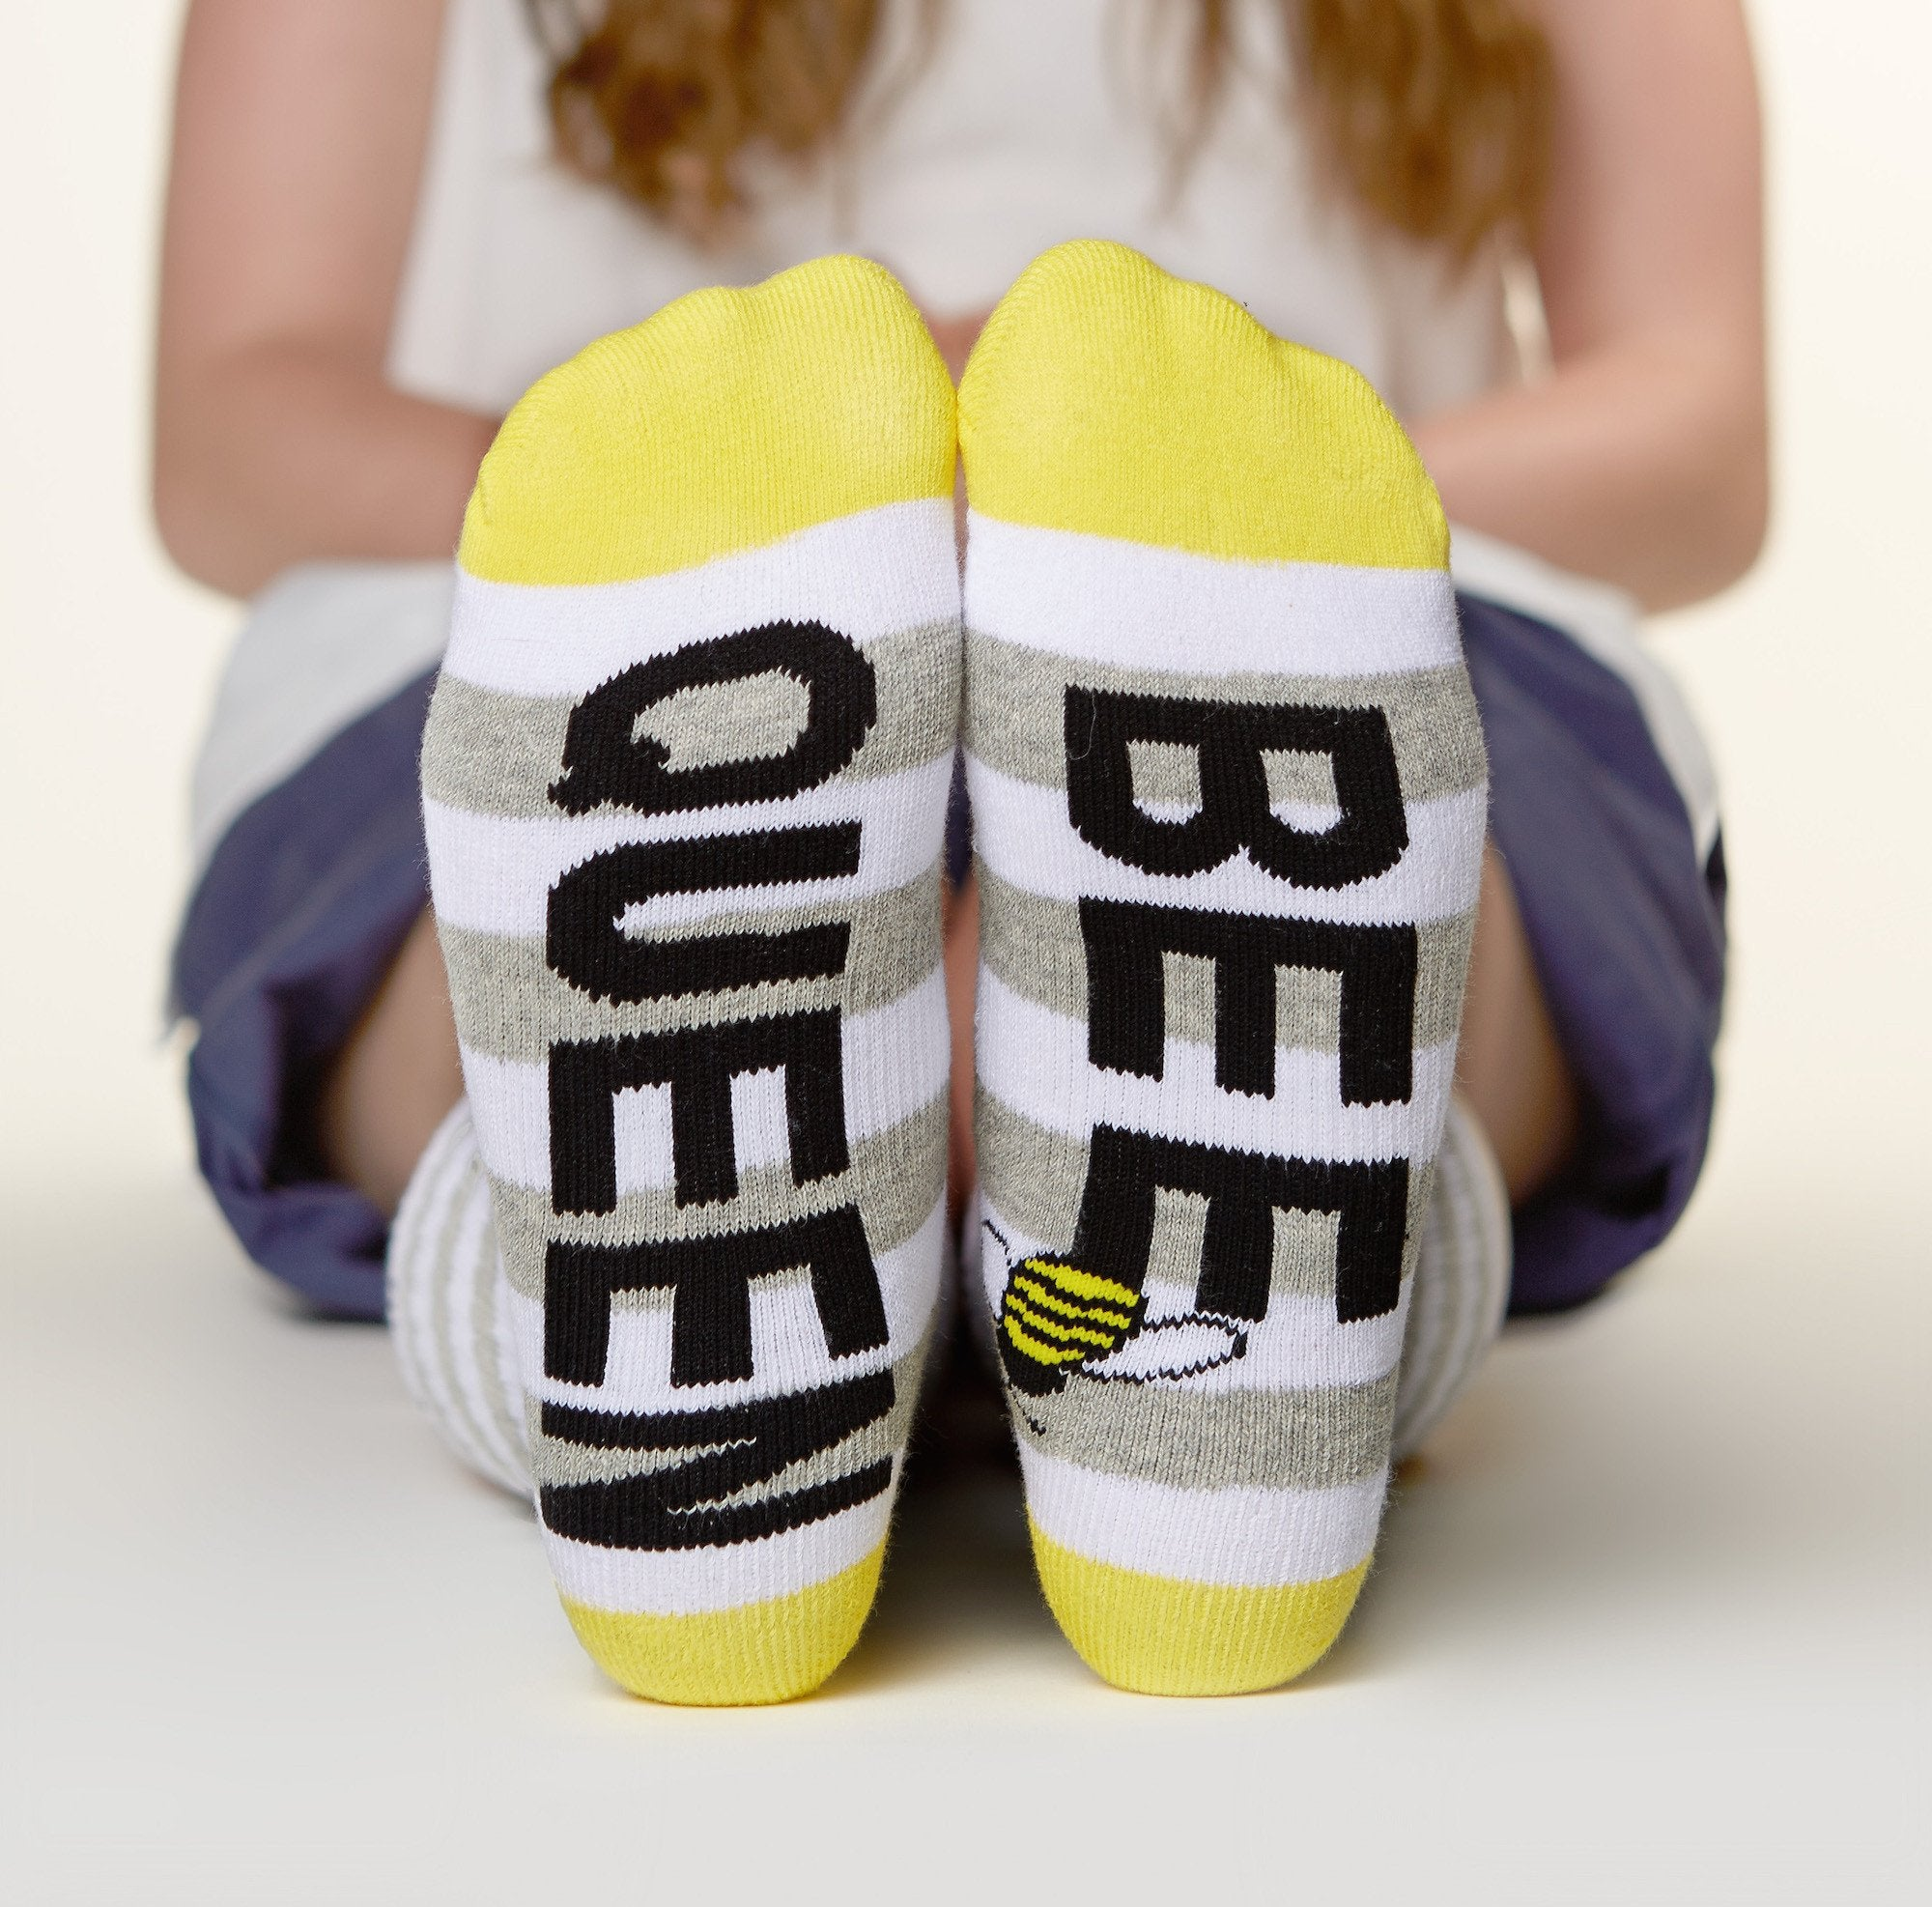 Socks for Mom Gift Set #4, queen bee bottom front view